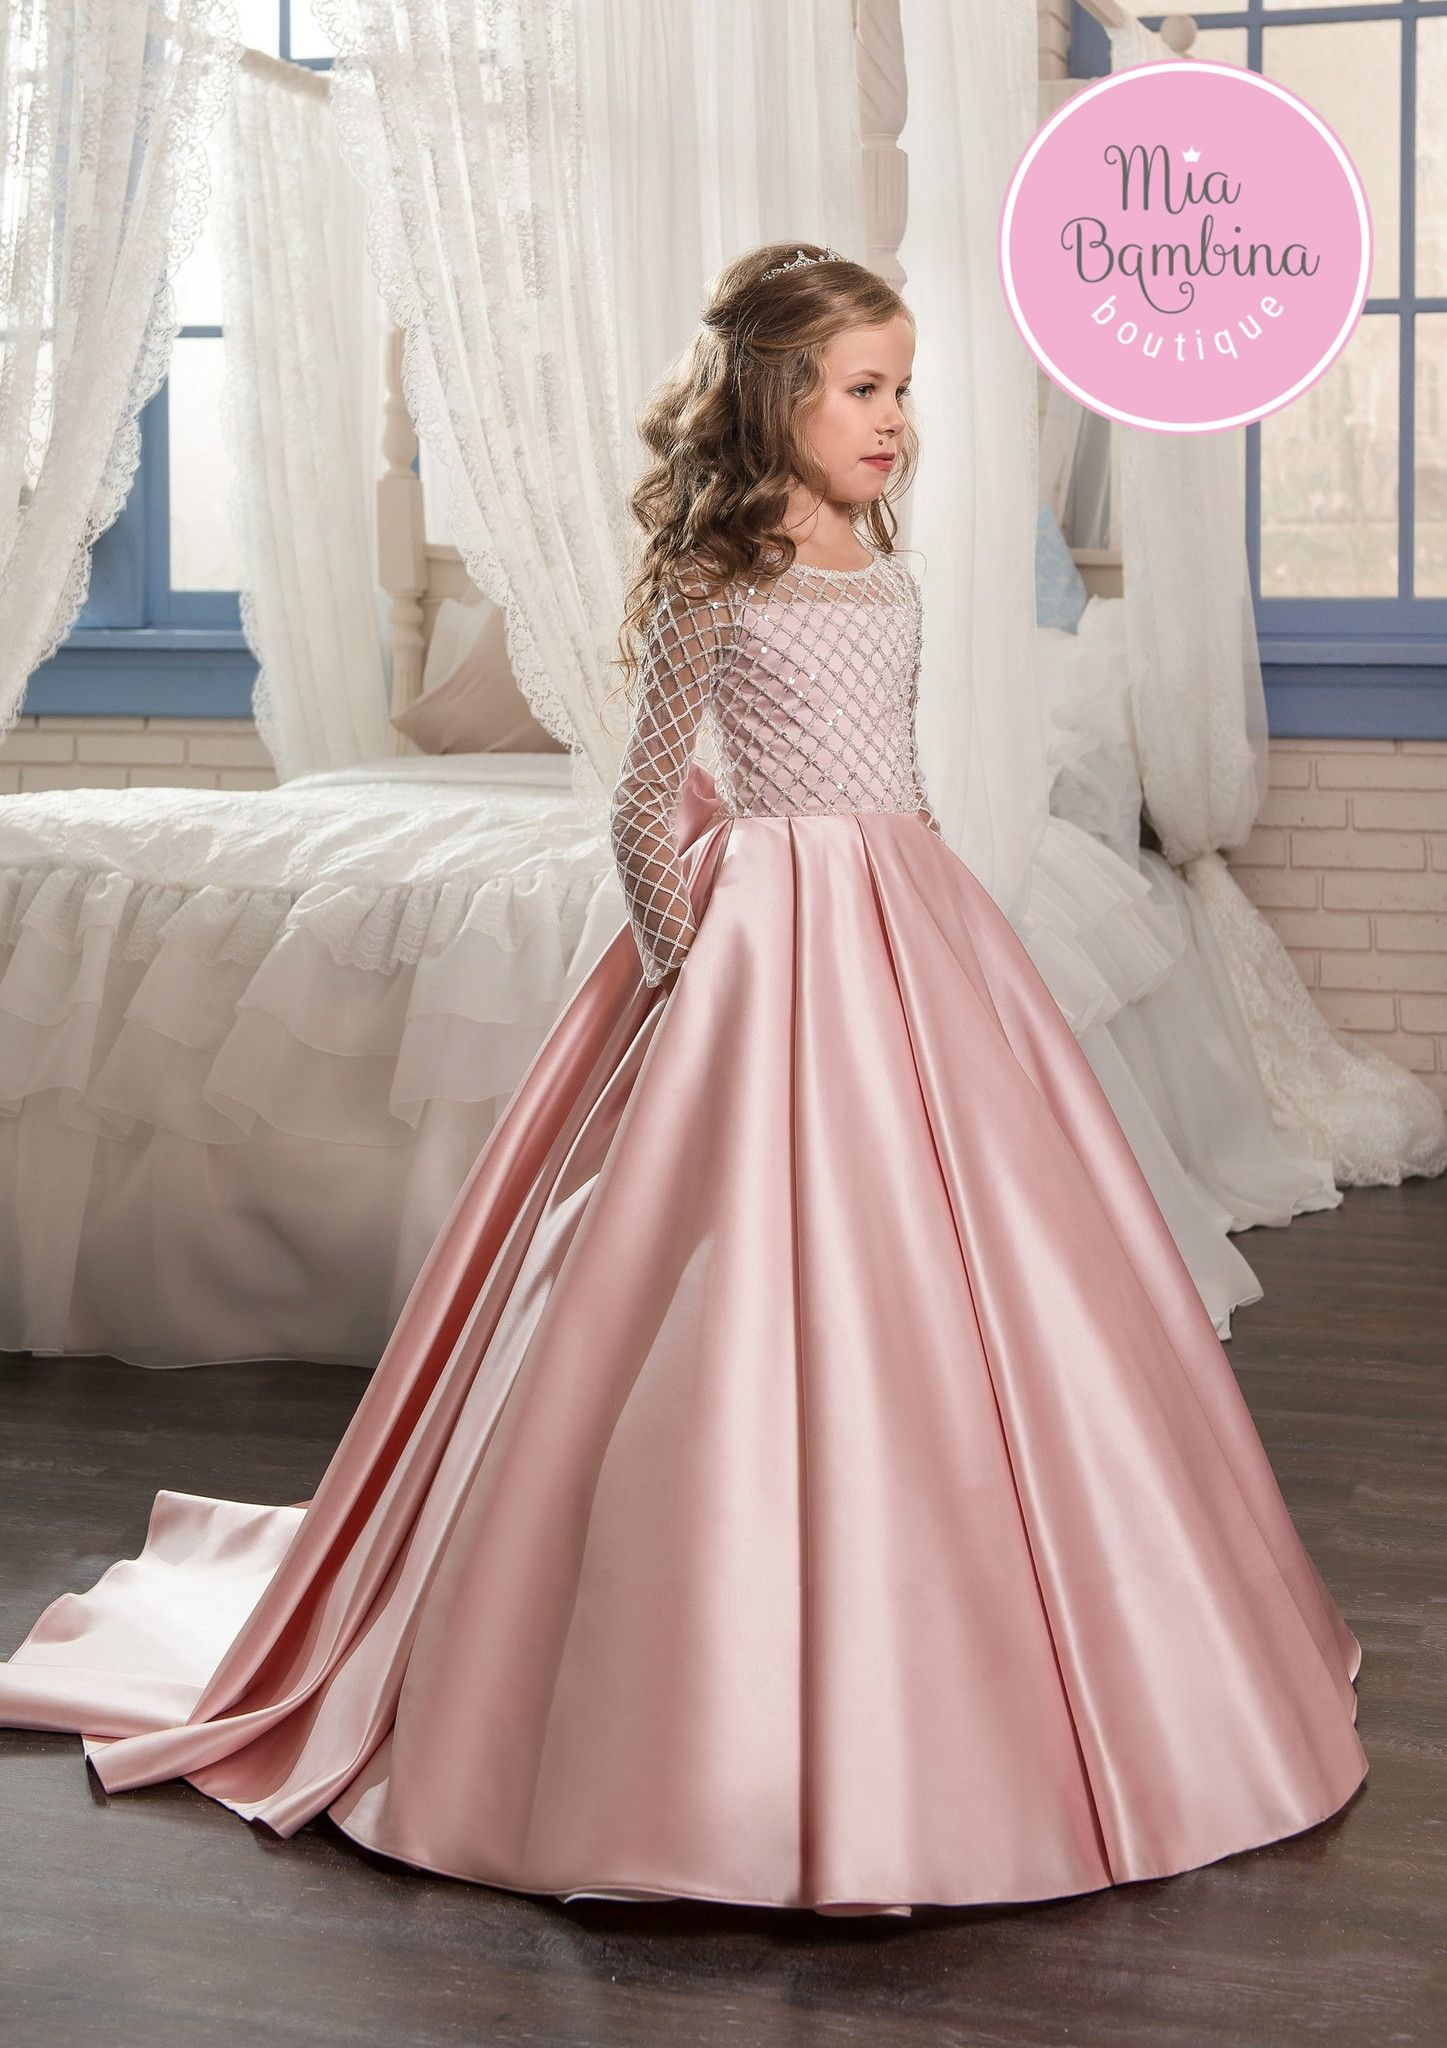 cd9ff2fdde2 This chic Toronto flower girl dress is a long satin ball gown for vintage-inspired  weddings. It features a long-sleeved top embroidered with textured ...